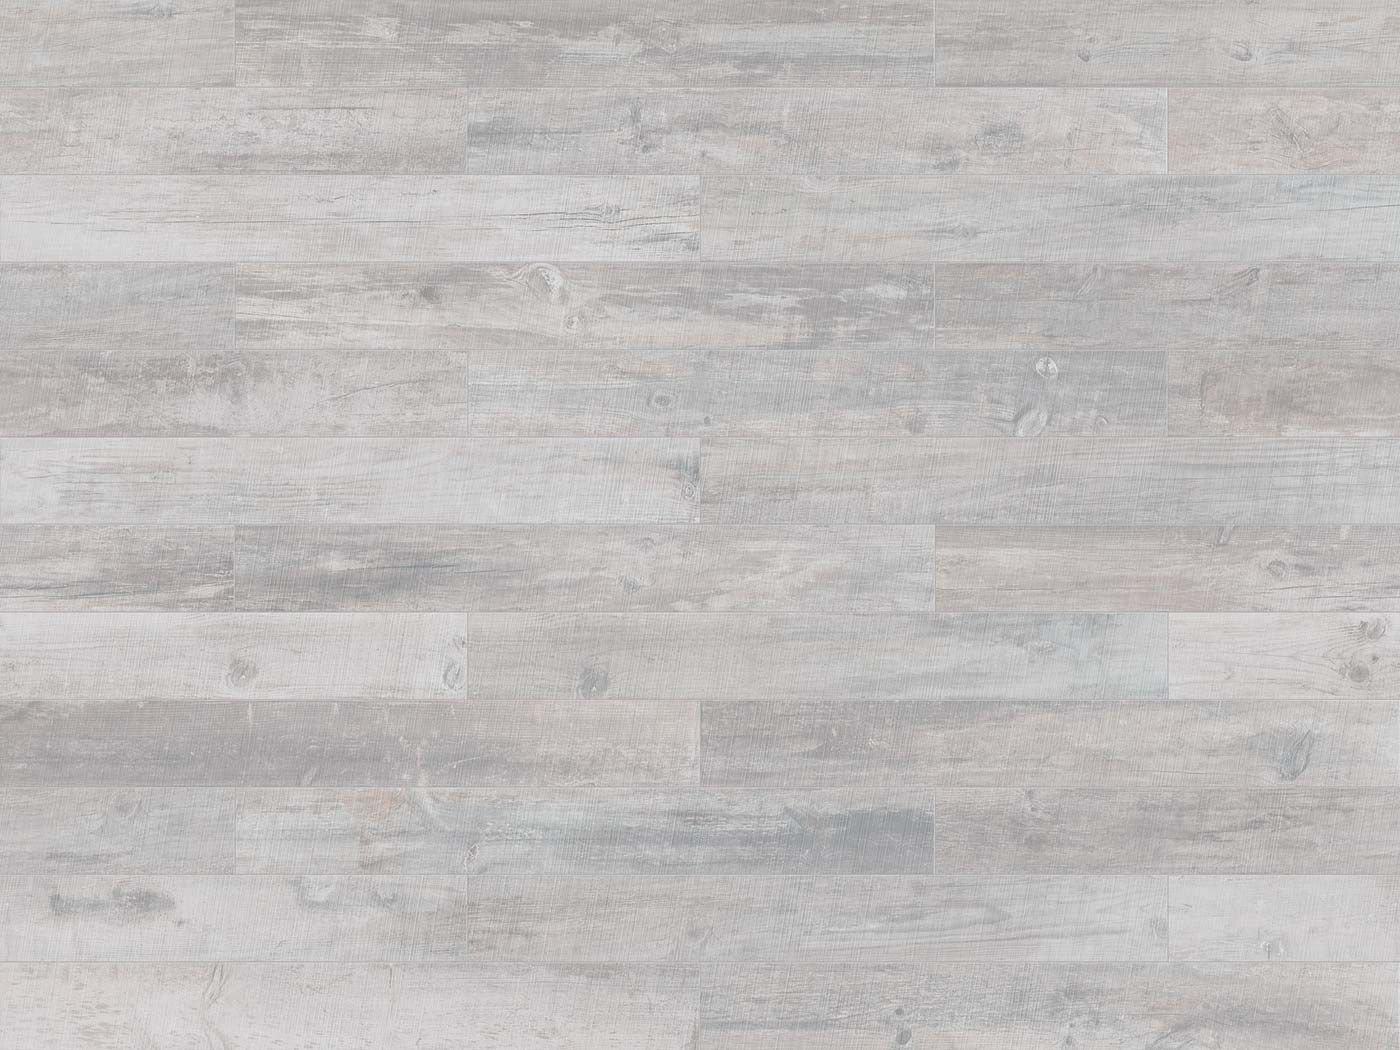 Indoor tile wall floor porcelain stoneware styletech indoor tile wall floor porcelain stoneware styletech woodstyle 01 dailygadgetfo Image collections